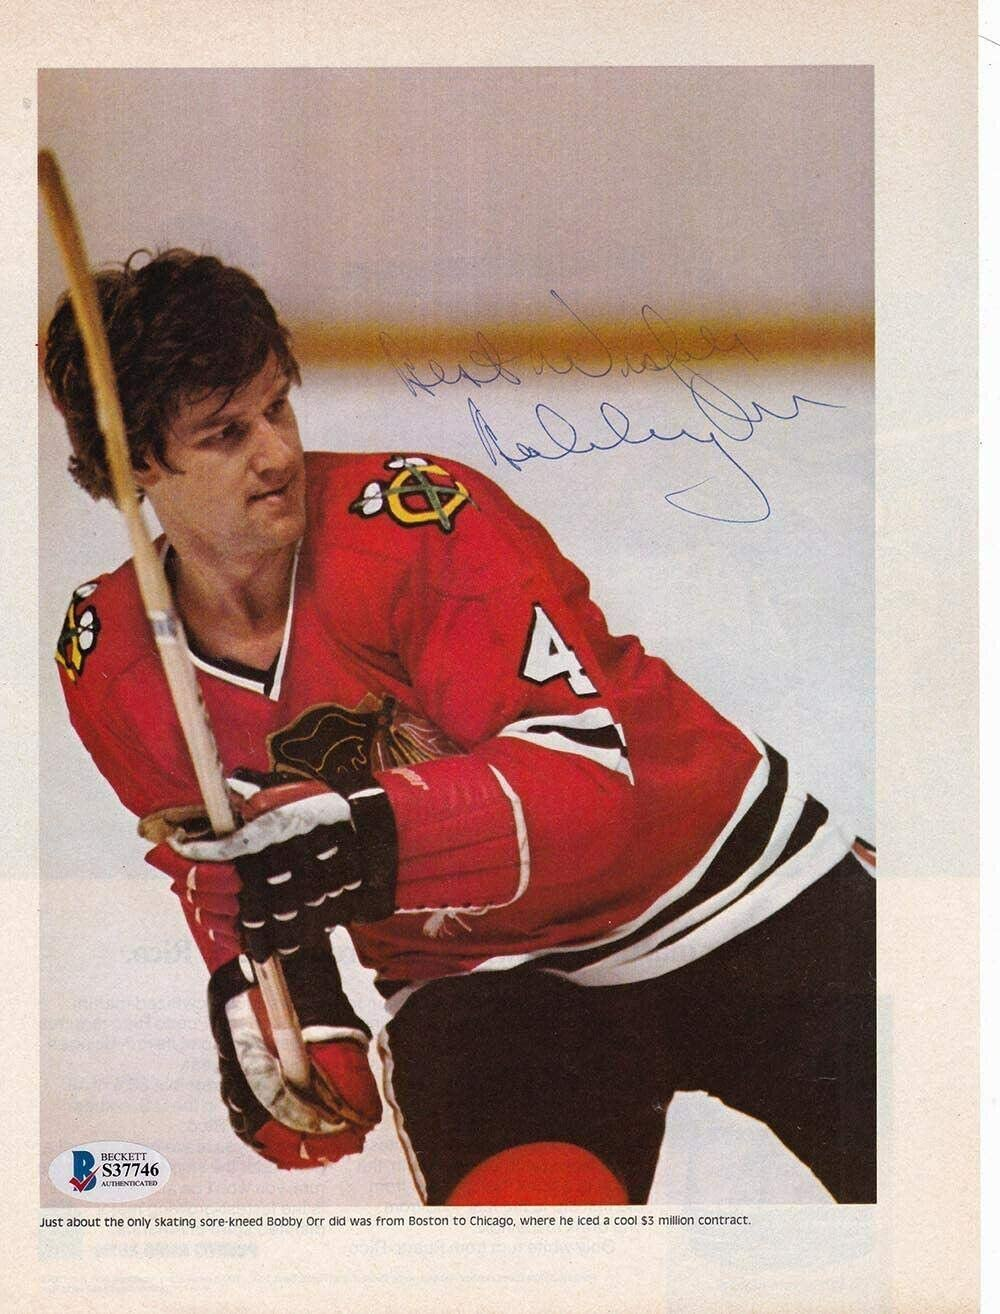 Bobby Orr Chicago Black Hawks Signed Magazine Page Inscribed BAS - Beckett Authentication - Autographed NHL Magazines